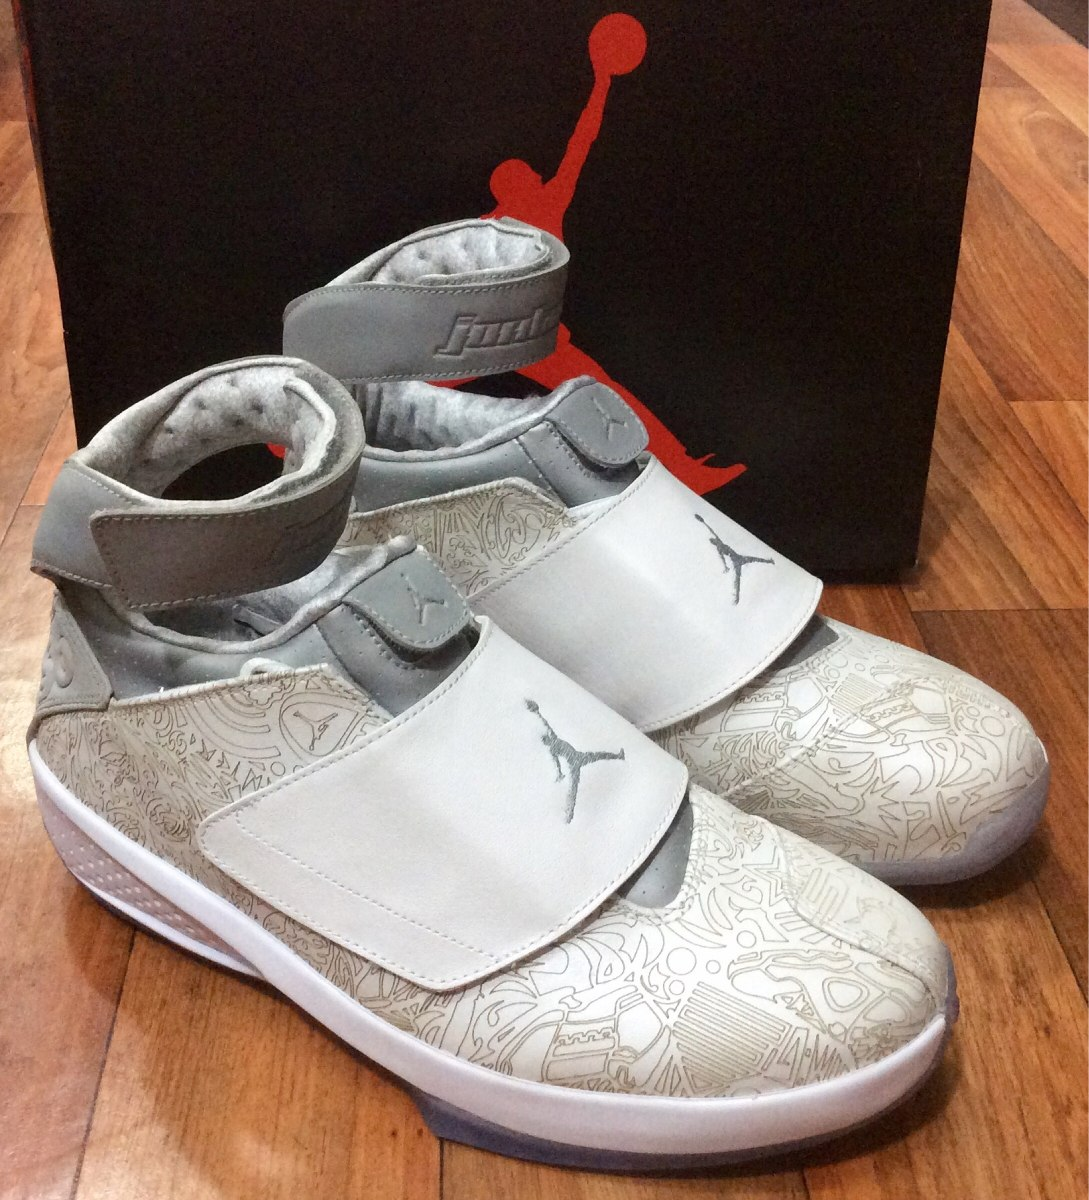 2fe6e185d743 ... discount code for zapatilla air jordan retro 20 laser. cargando zoom.  05861 5710c